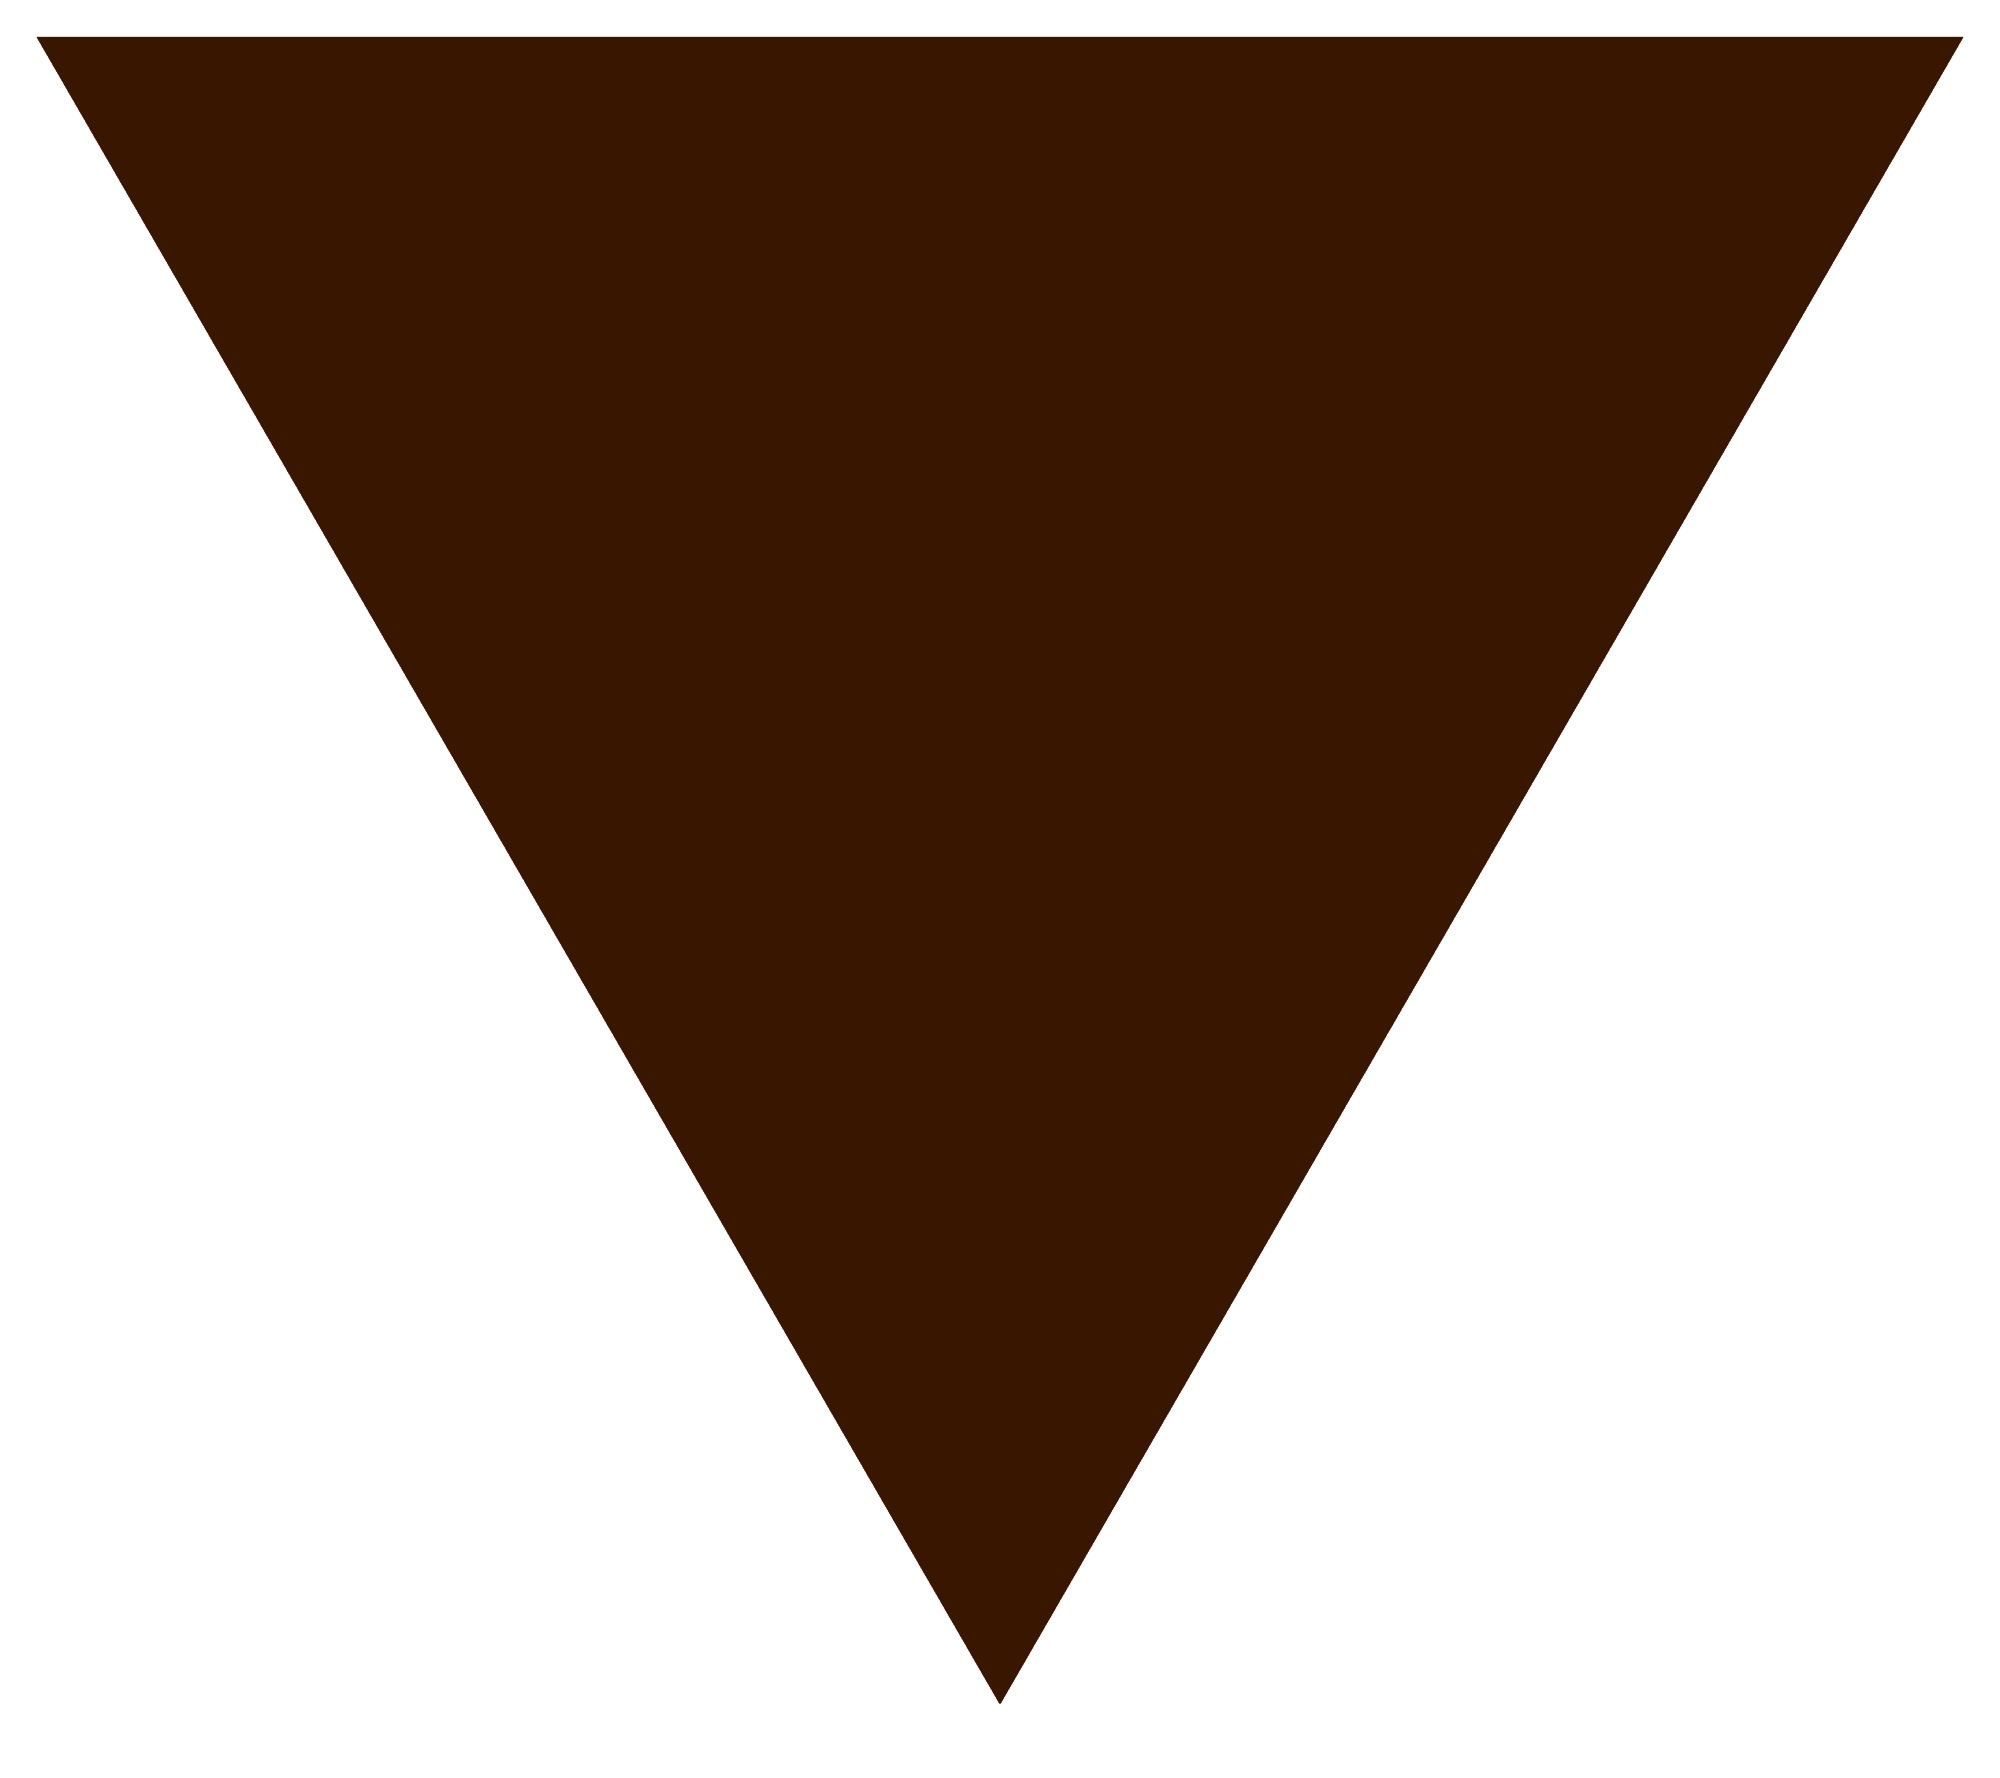 Brown triangle svg.jpg